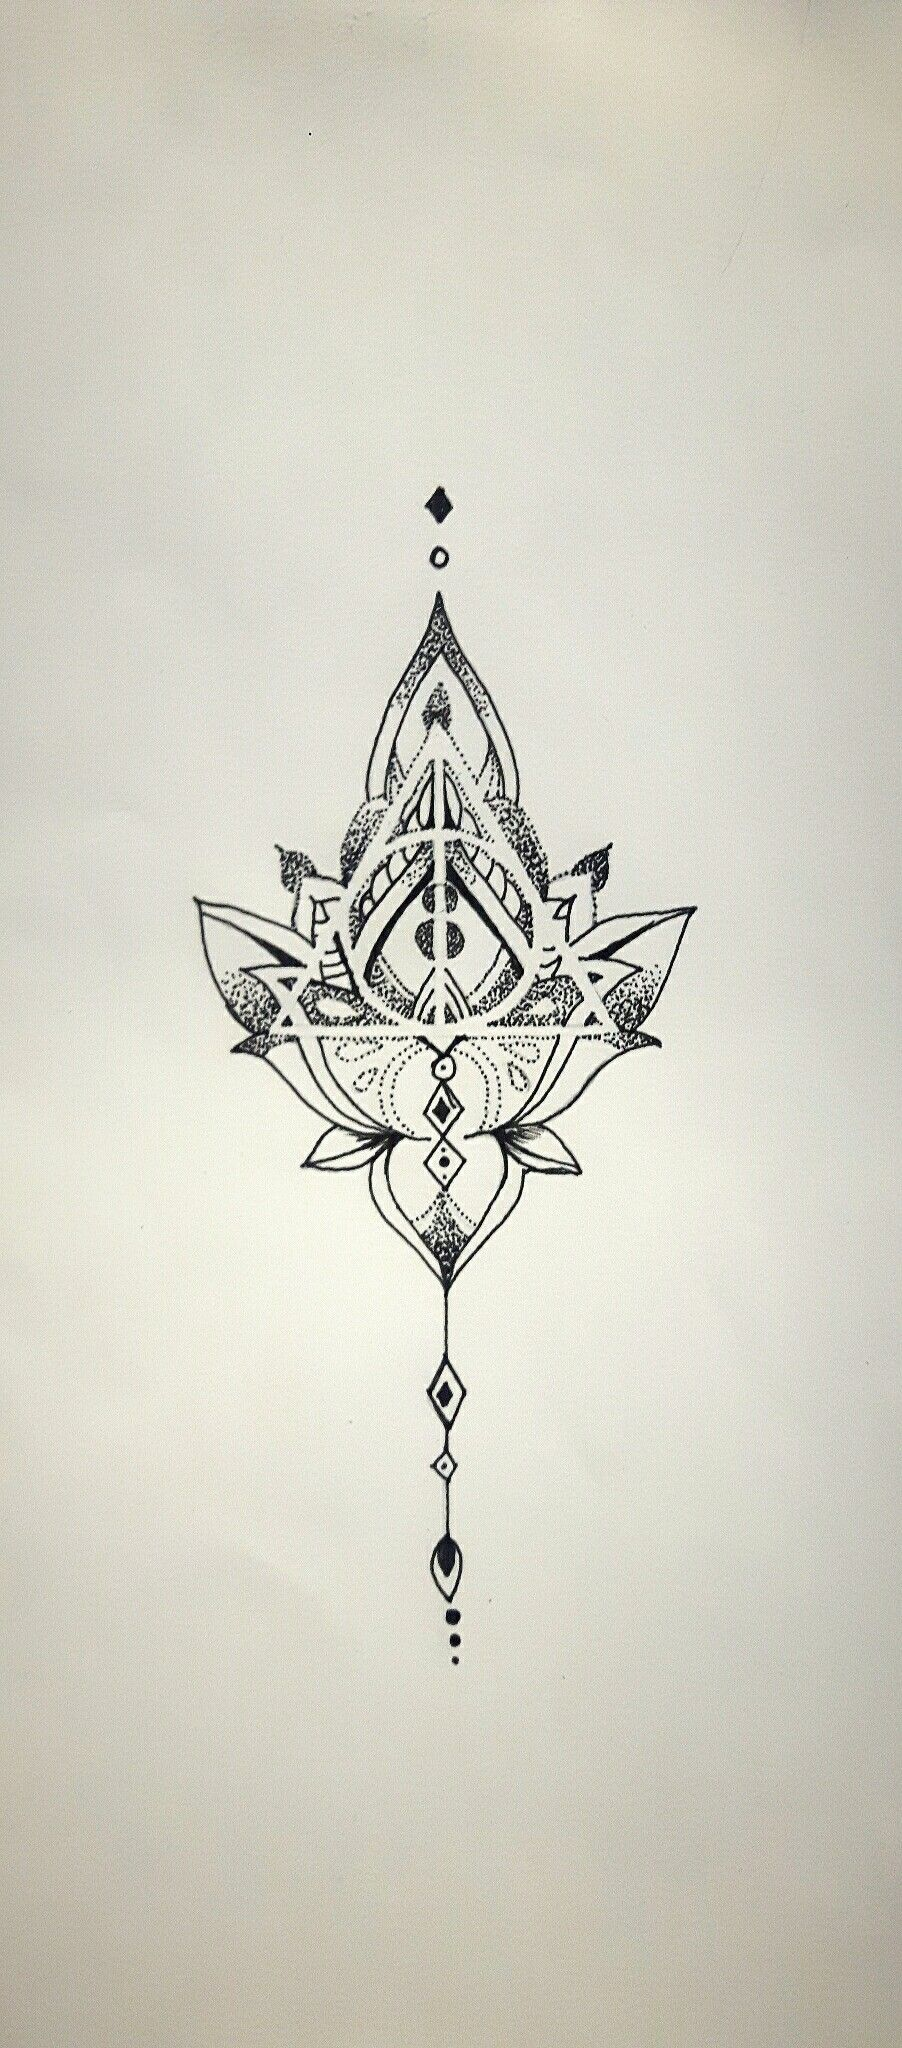 Photo of Mandala Deathly Hallows, tattoo idea. Own design Follow me on Insta @wlmscyn